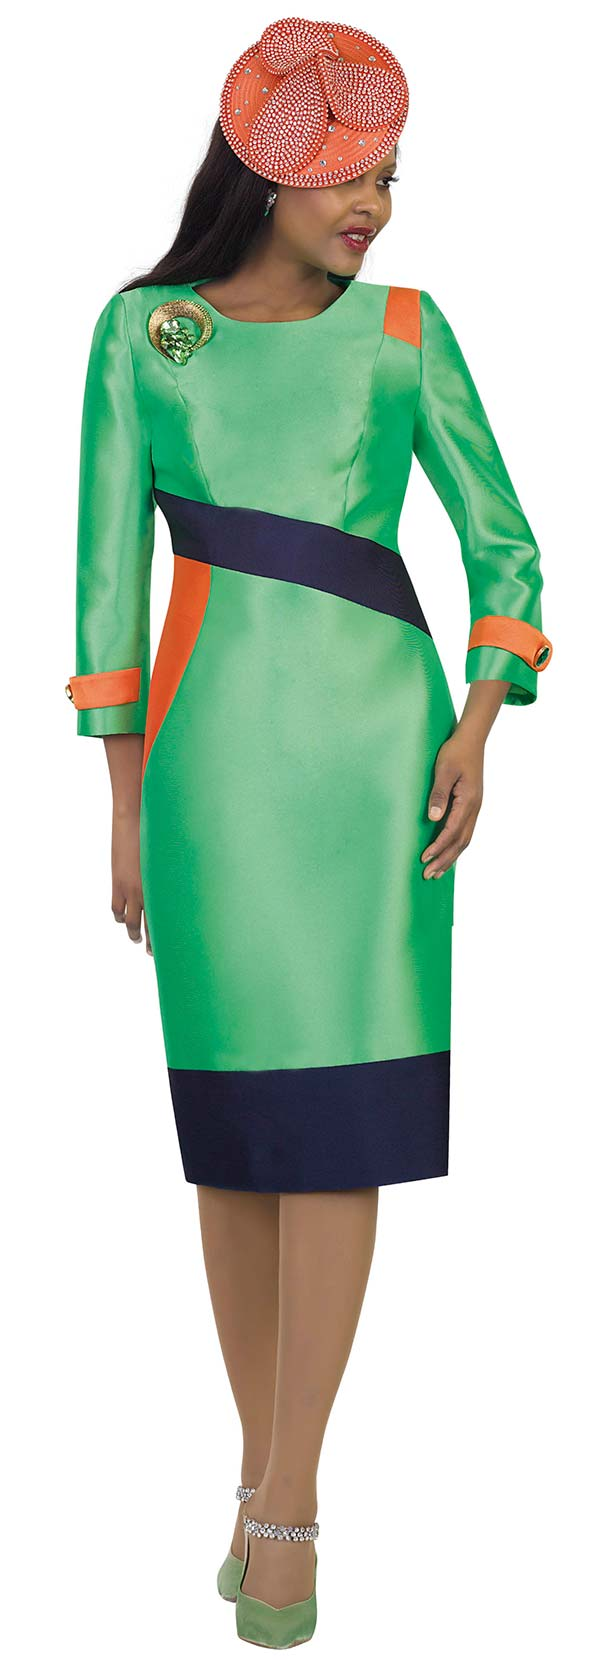 Lily and Taylor 4489-Green - Multi Color Accented Dress With Brooch